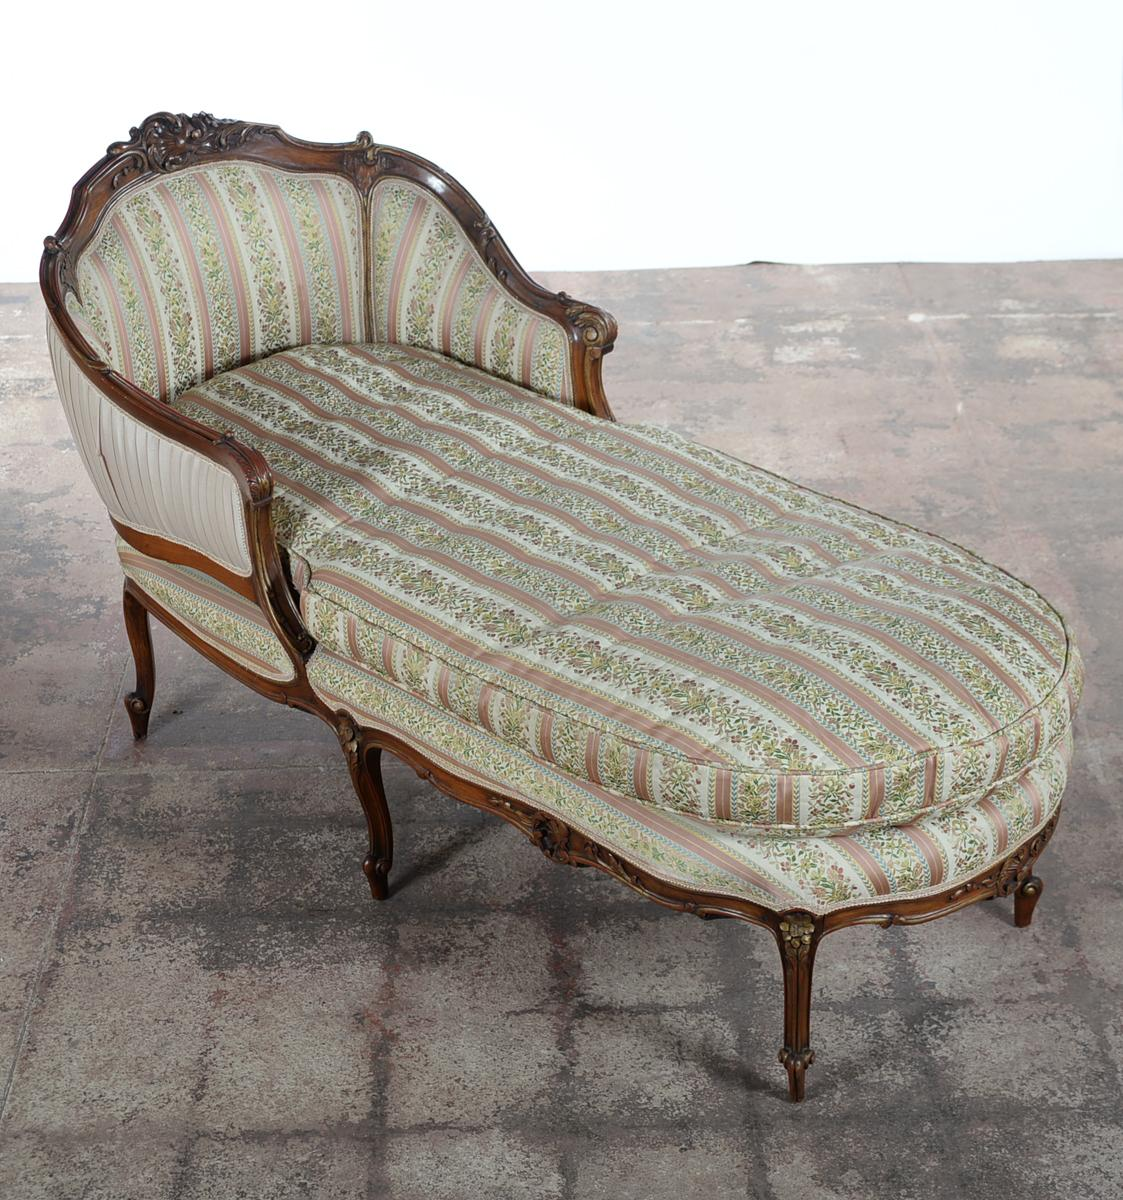 19th C. Louis XV Mahogany French Chaise Lounge - Image 2 of 10  sc 1 st  Chairish : french chaise - Sectionals, Sofas & Couches